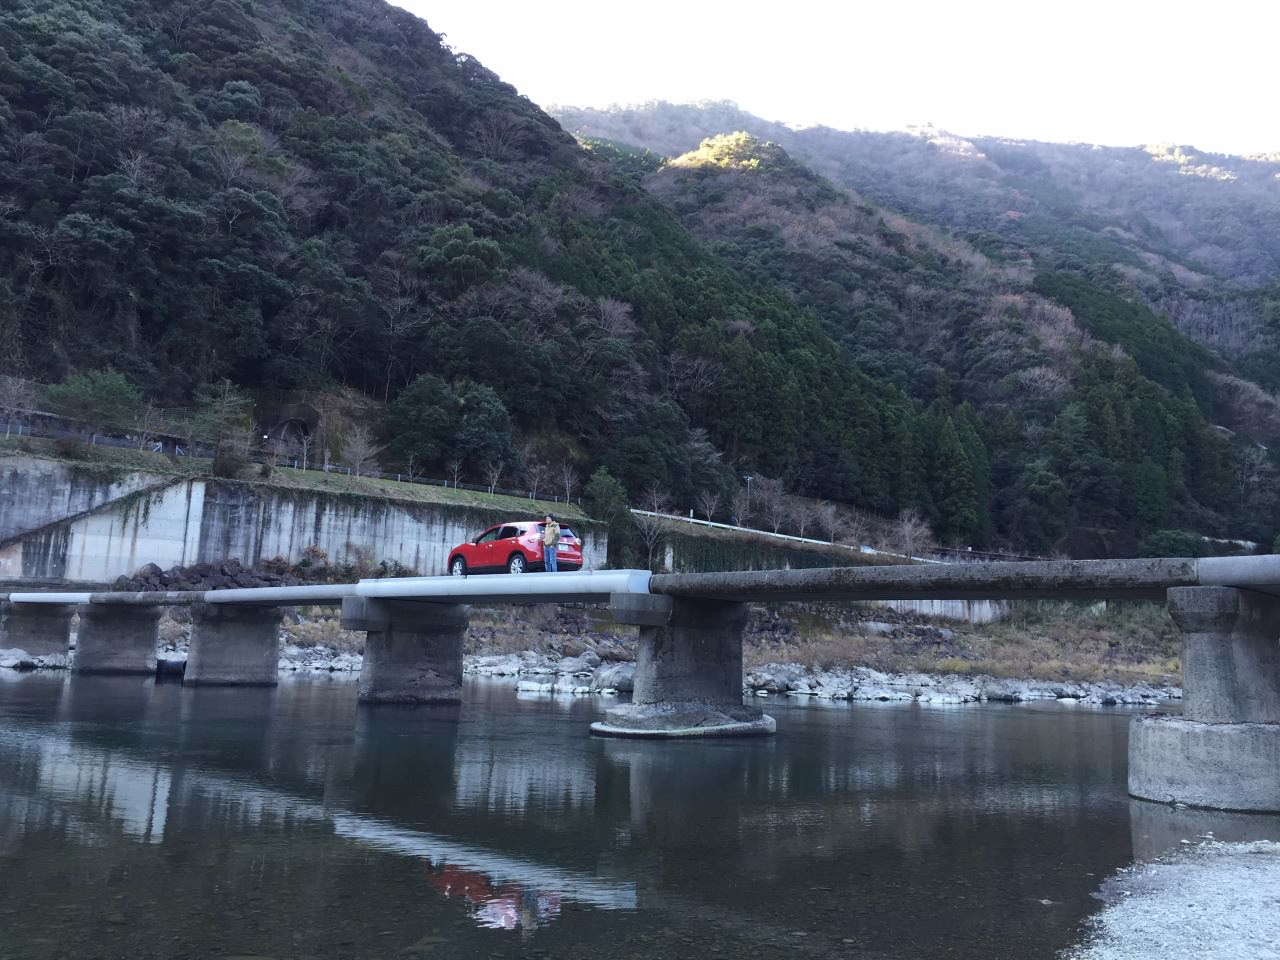 Drive through such a narrow bridge with great scenic view – really exciting!